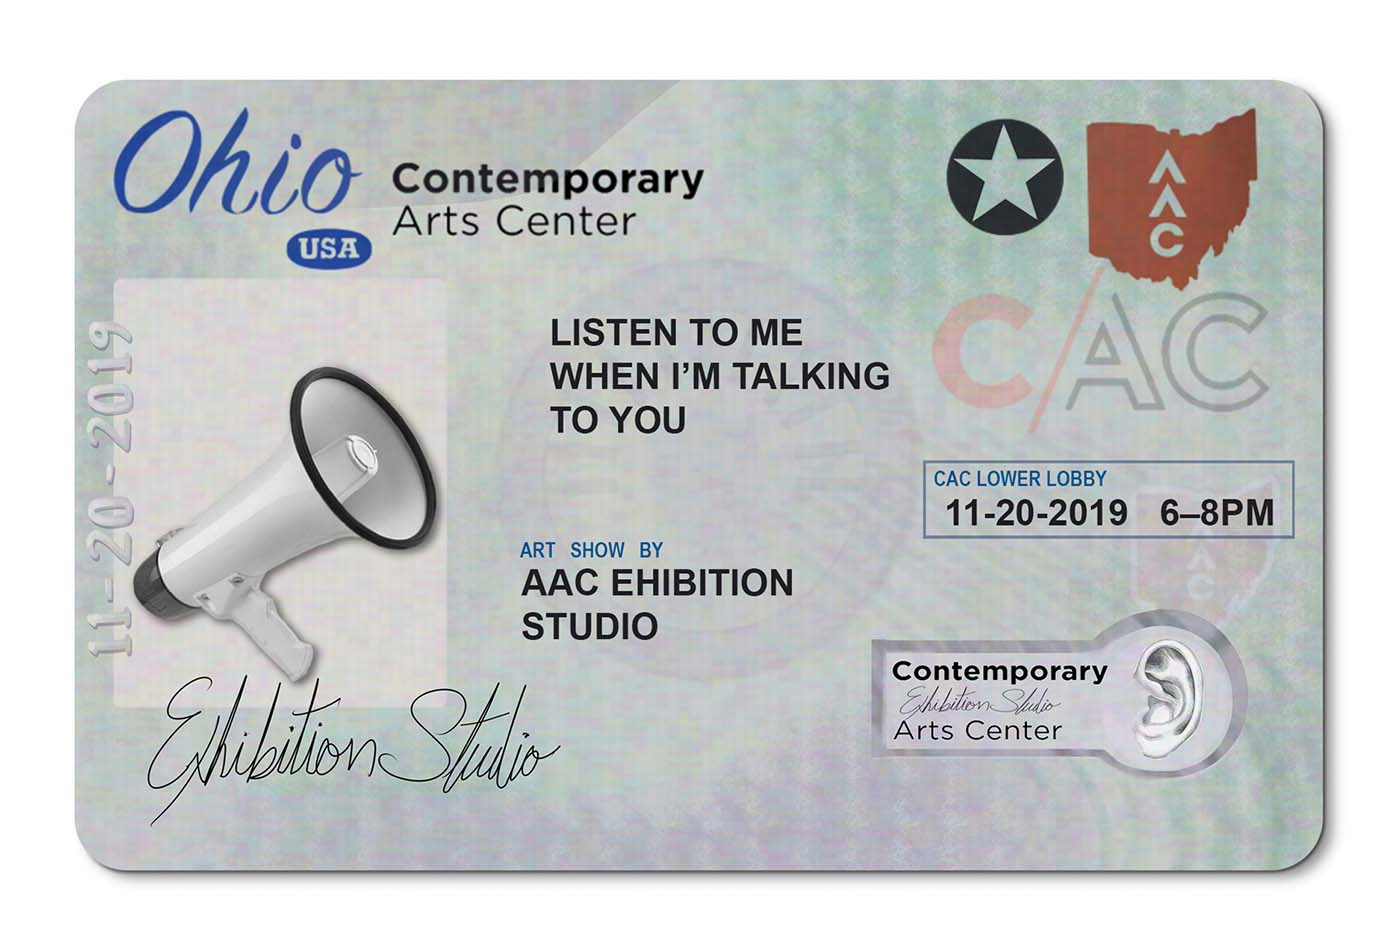 A picture of a Ohio drivers license. A megaohone is pictured where an image of the person would be. Information about the show is listed where a persons personal information would normally be.